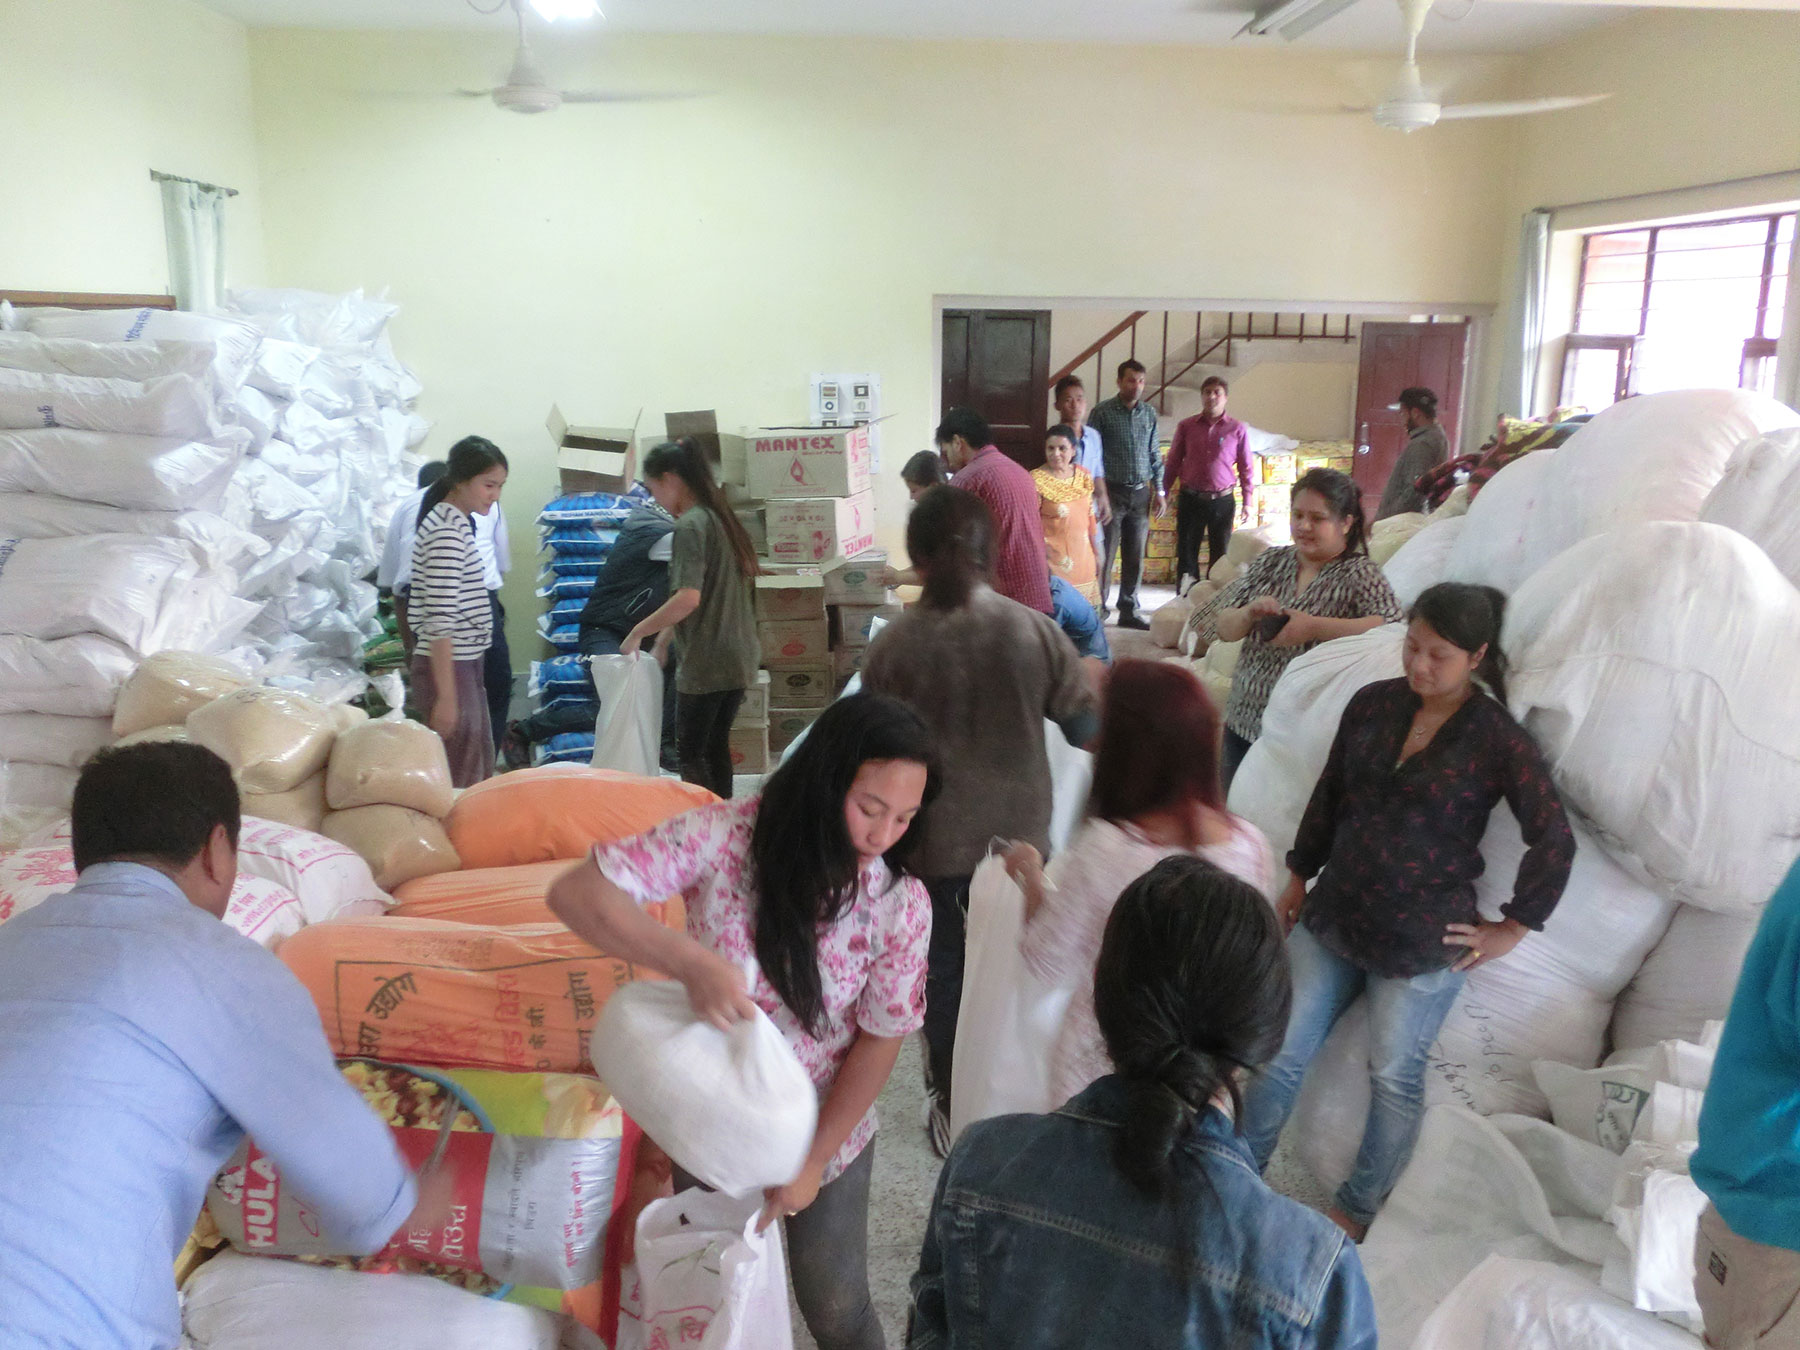 Preparing sacks of rice and lentils for distribution